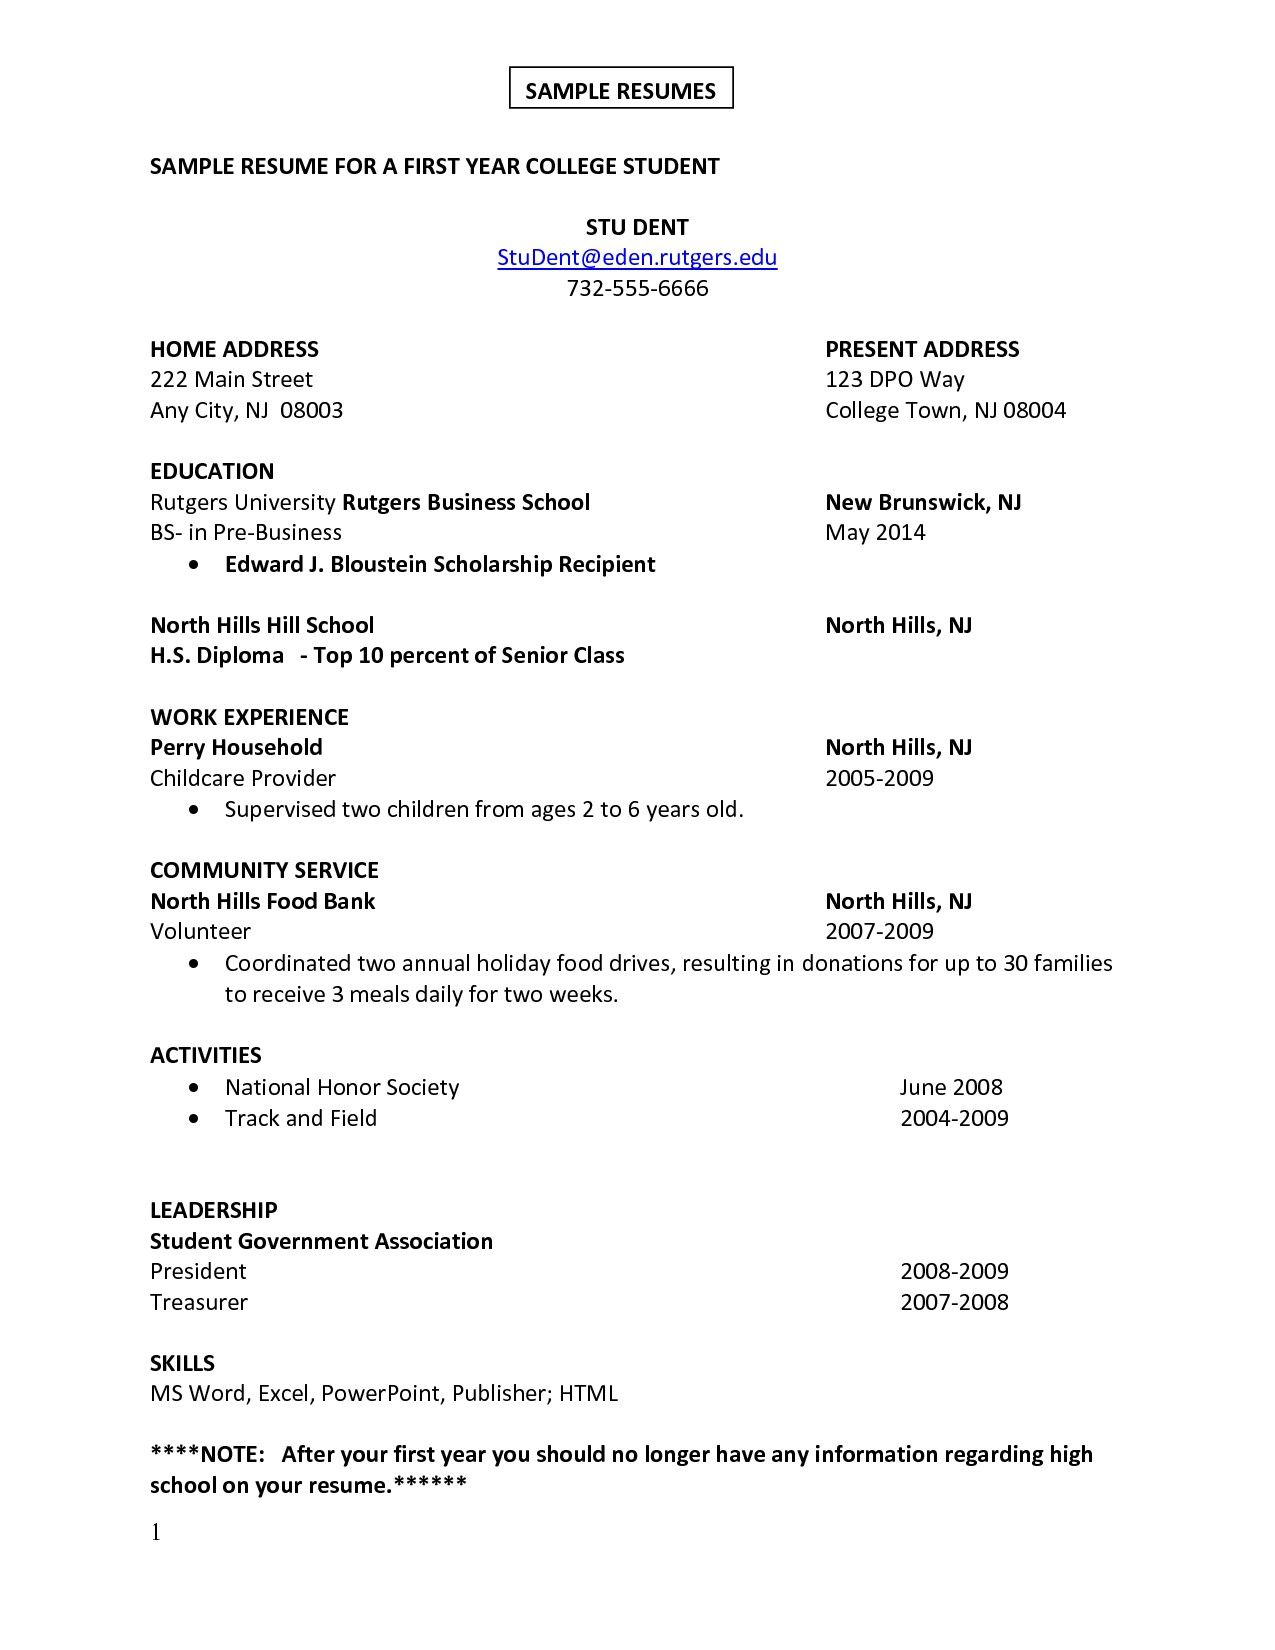 resume templates for first job